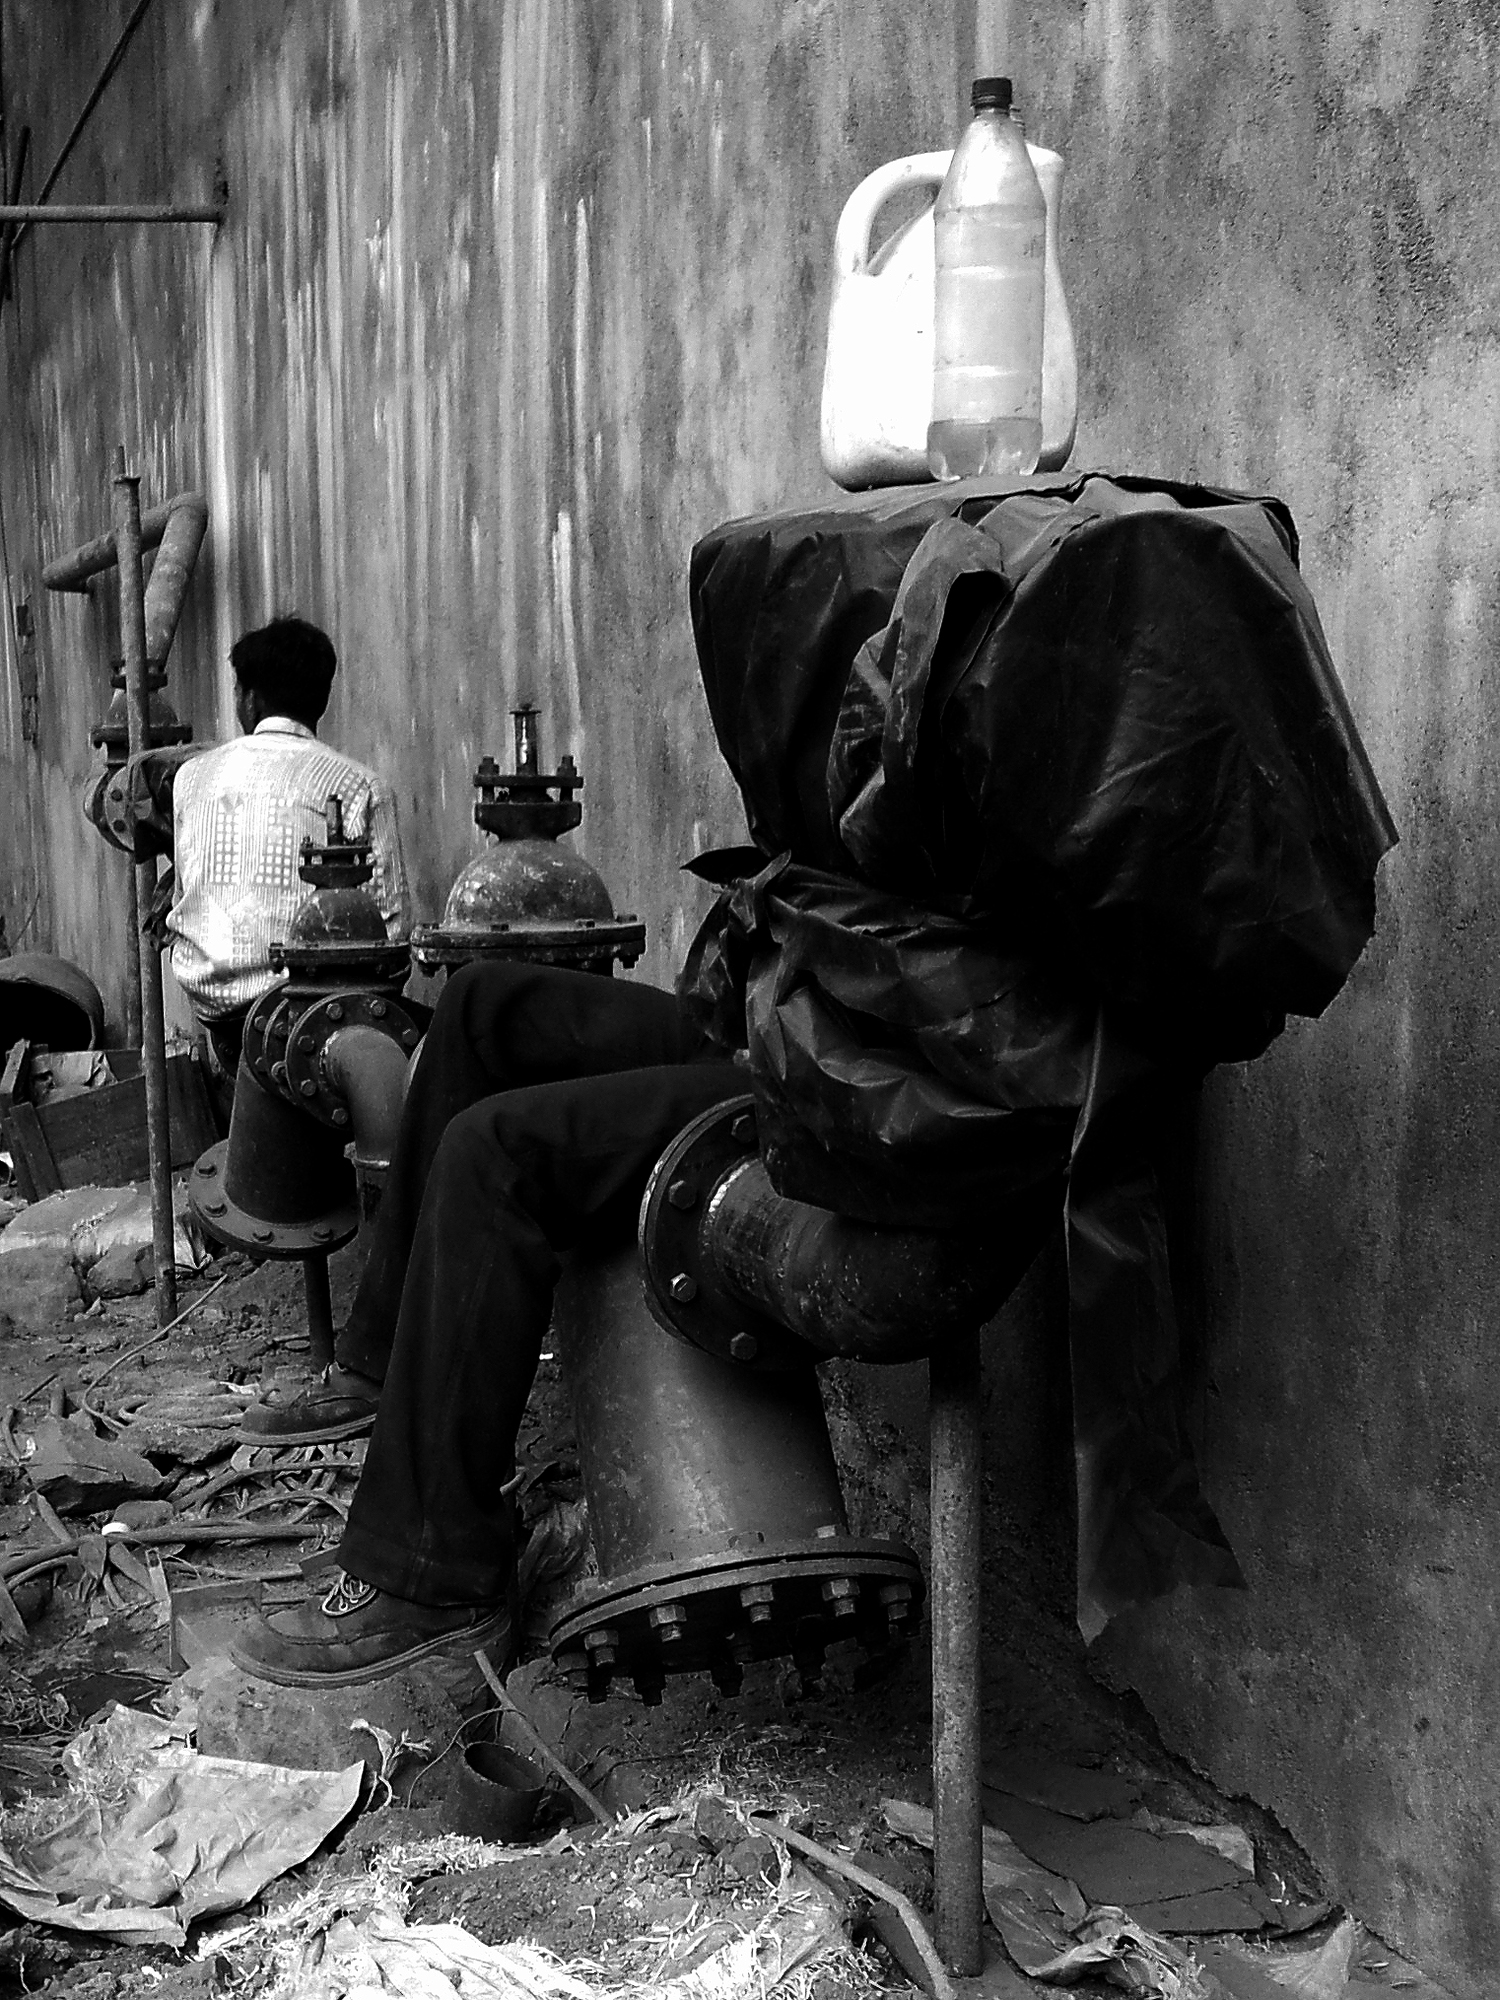 This shot was taken at a under maintenance building.These people were taking rest during the lunch break.I could notice the bottle and the empty container at the head level of the guy which up to some extent symbolises the idleness of mind